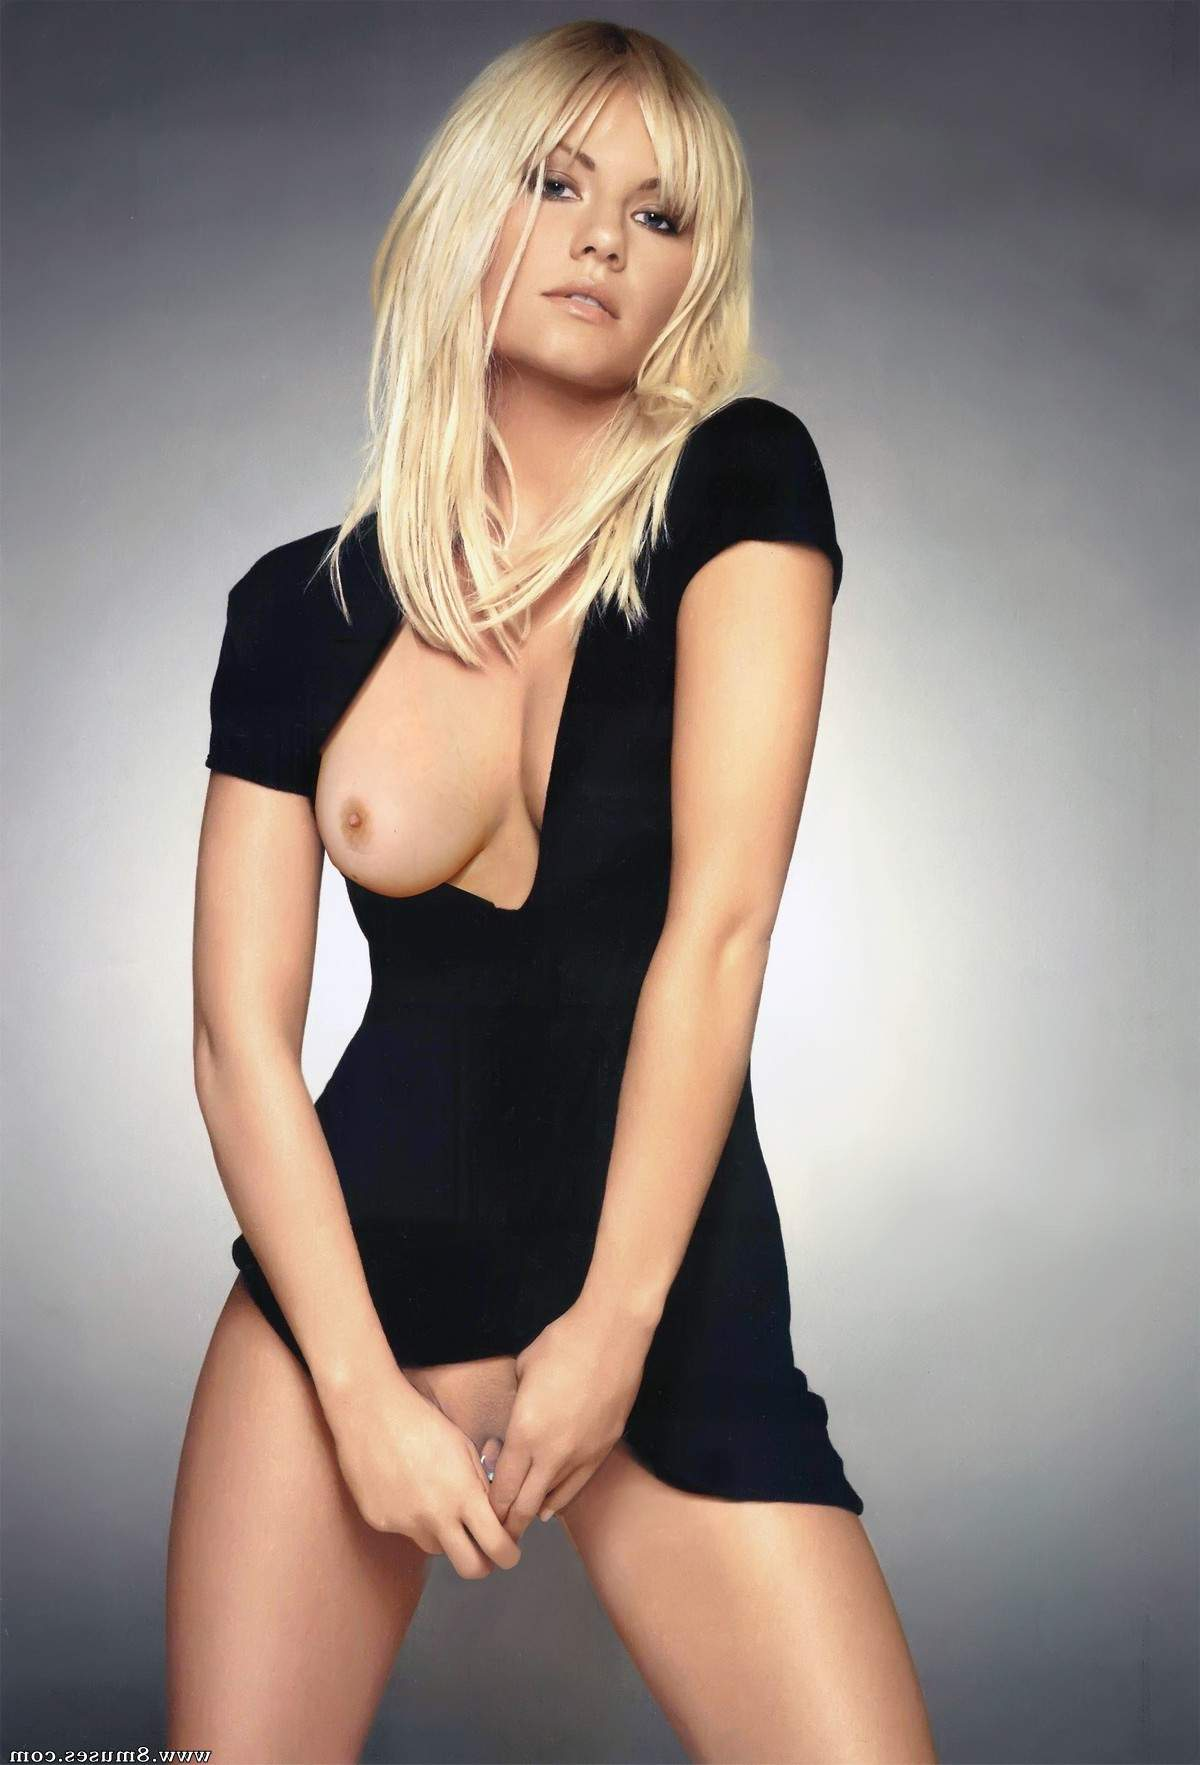 Fake-Celebrities-Sex-Pictures/Elisha-Cuthbert Elisha_Cuthbert__8muses_-_Sex_and_Porn_Comics_310.jpg